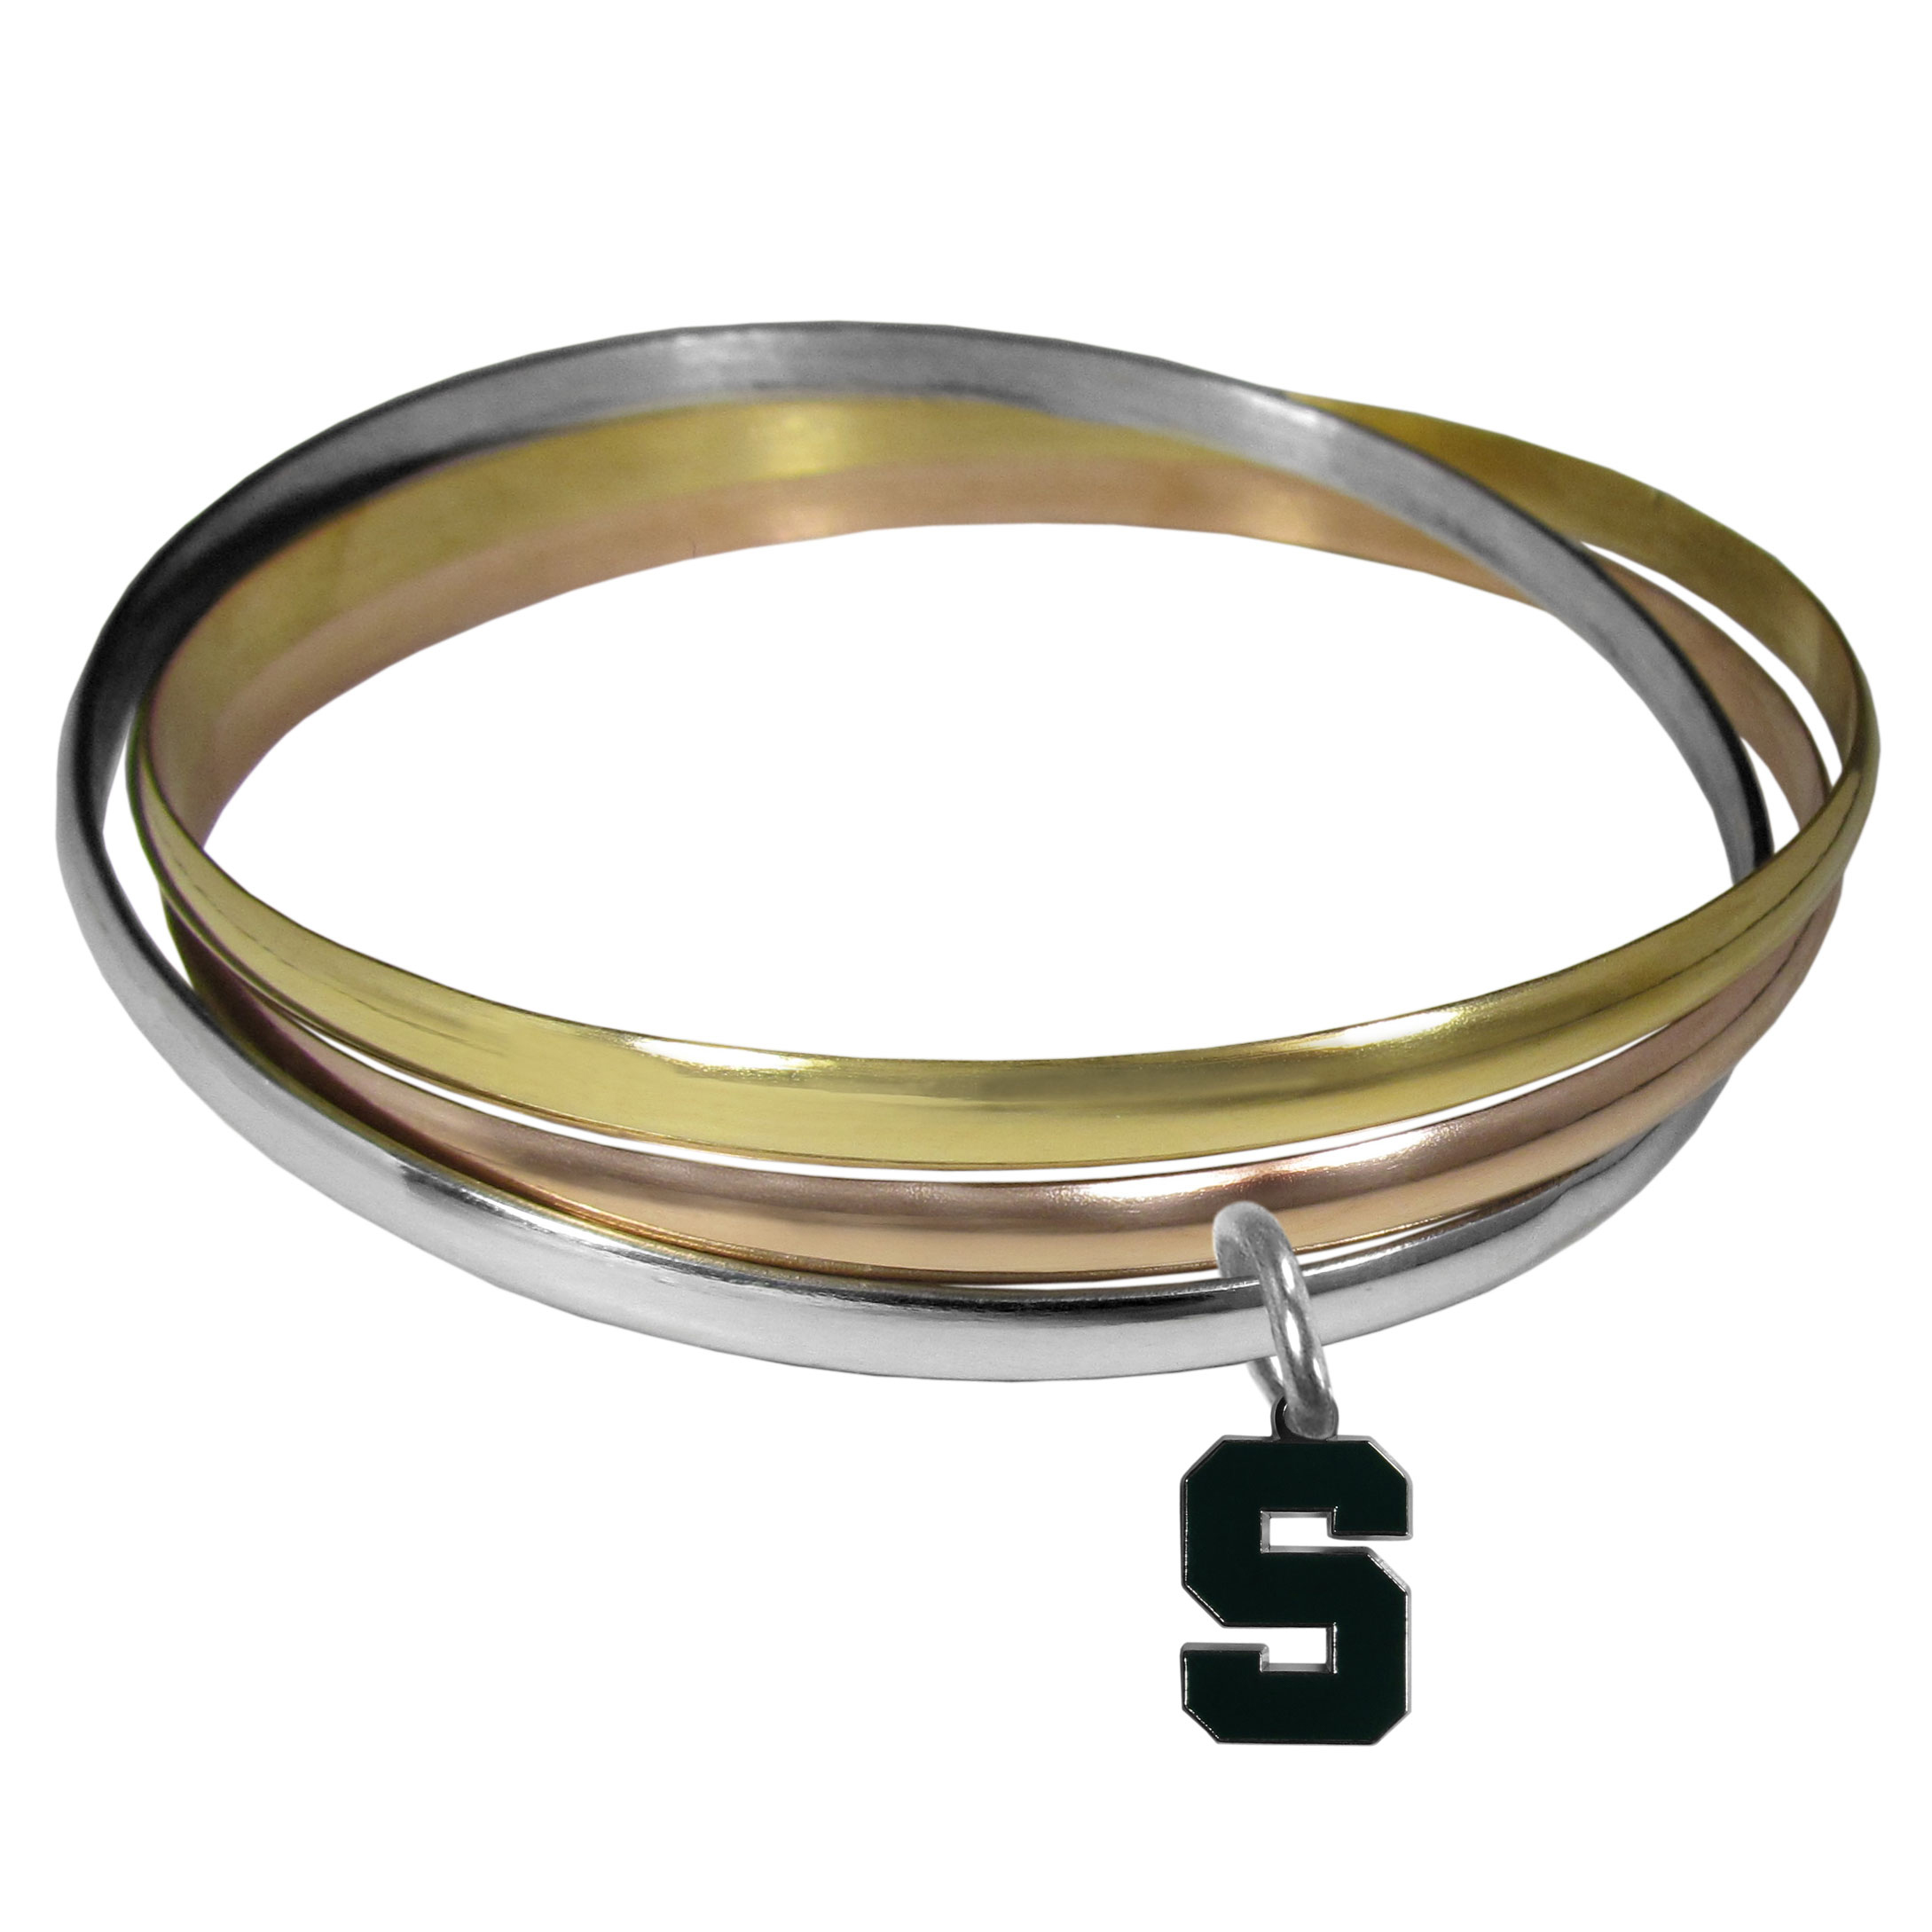 Michigan St. Spartans Tri-color Bangle Bracelet - These beautiful bangles come in a interlocking style and feature a fully cast Michigan St. Spartans charm with enameled team colors. The bracelet has a silver toned bangle, gold tone bangle and brass toned bangle.